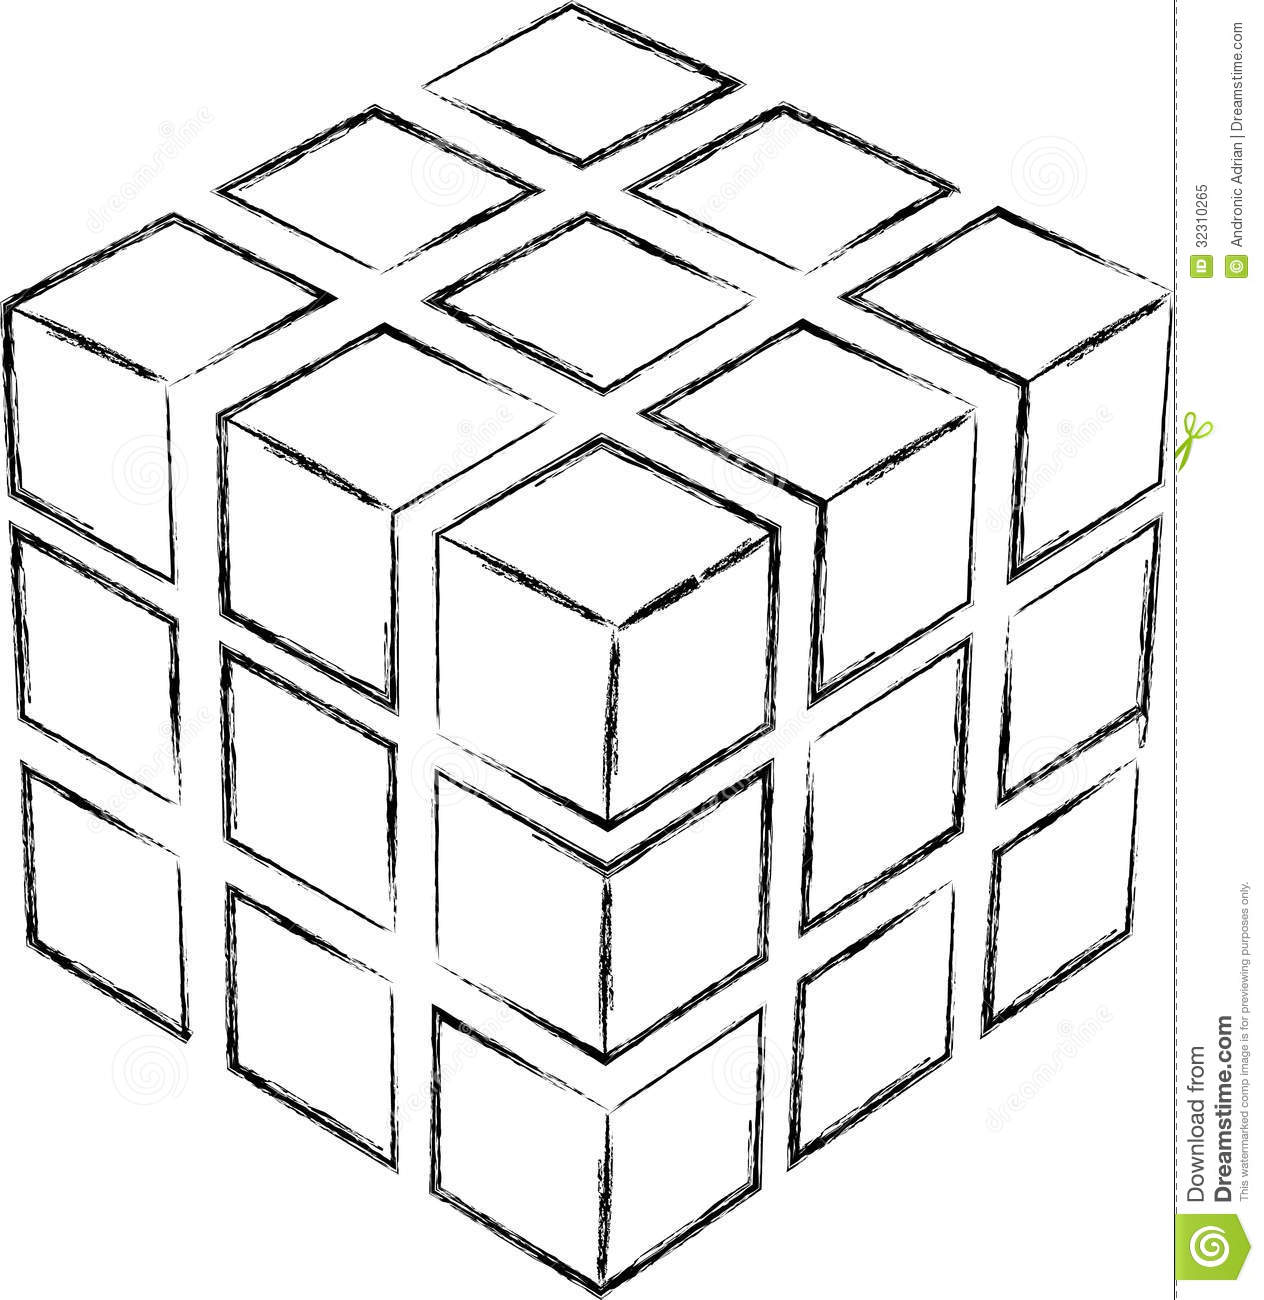 Cube Sketch Royalty Free Stock Photo